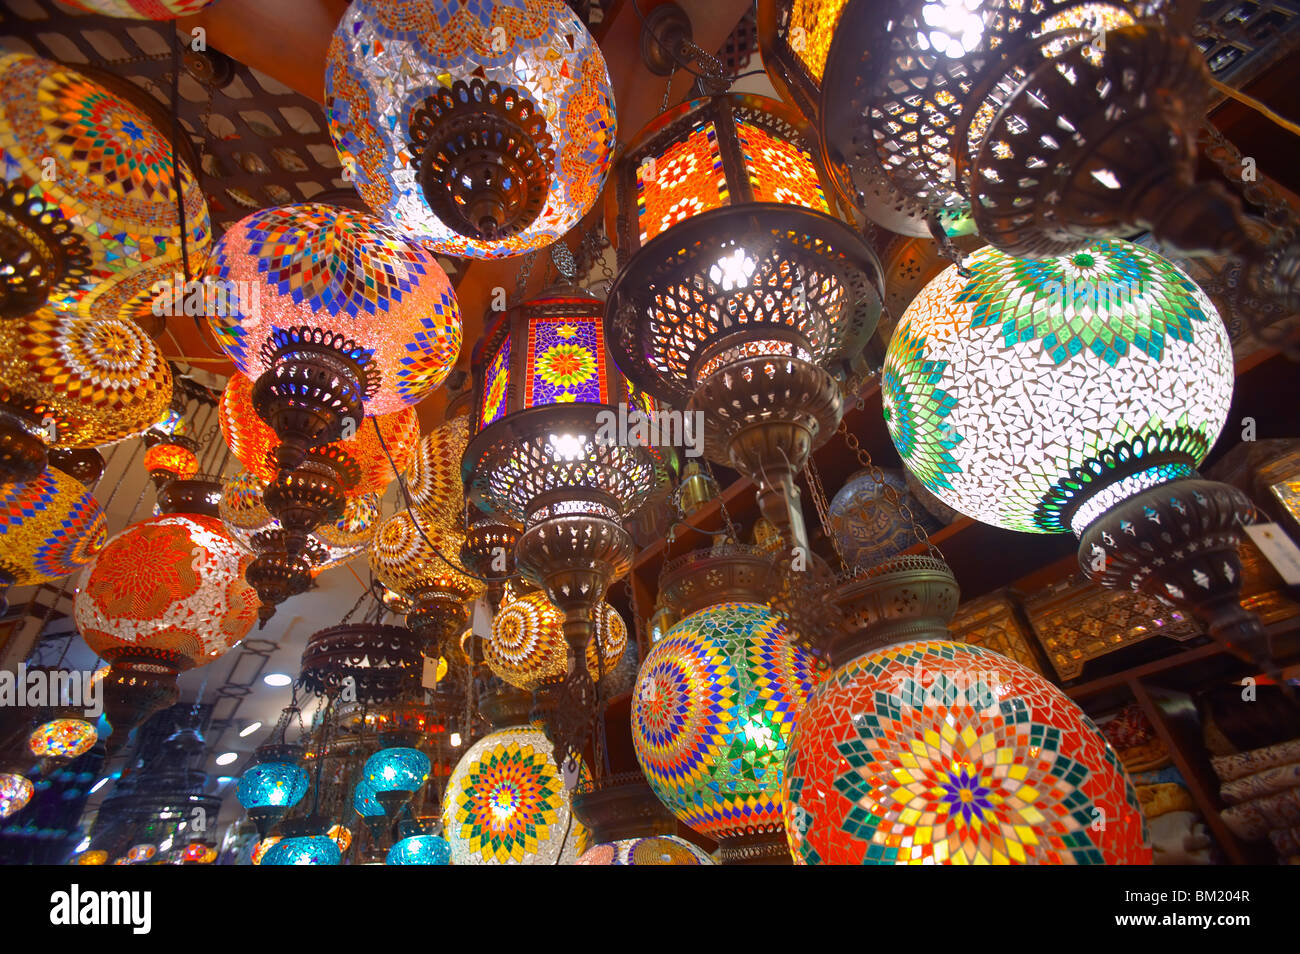 Hanging Lamps On Sale In Souk Dubai United Arab Emirates Middle - Hanging lights for sale